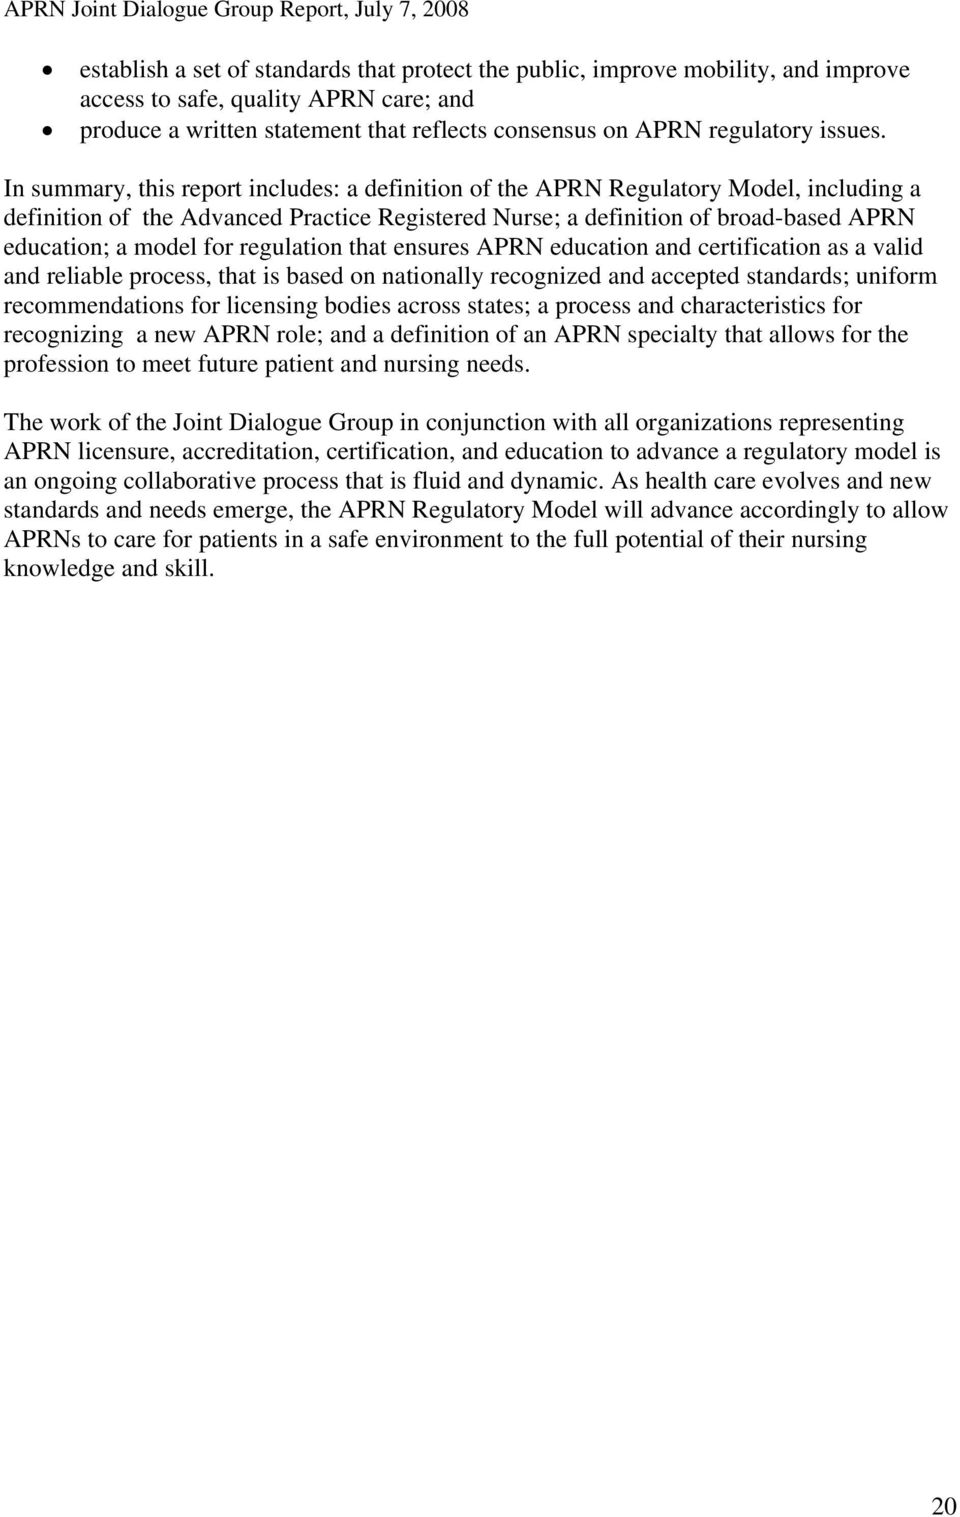 In summary, this report includes: a definition of the APRN Regulatory Model, including a definition of the Advanced Practice Registered Nurse; a definition of broad-based APRN education; a model for